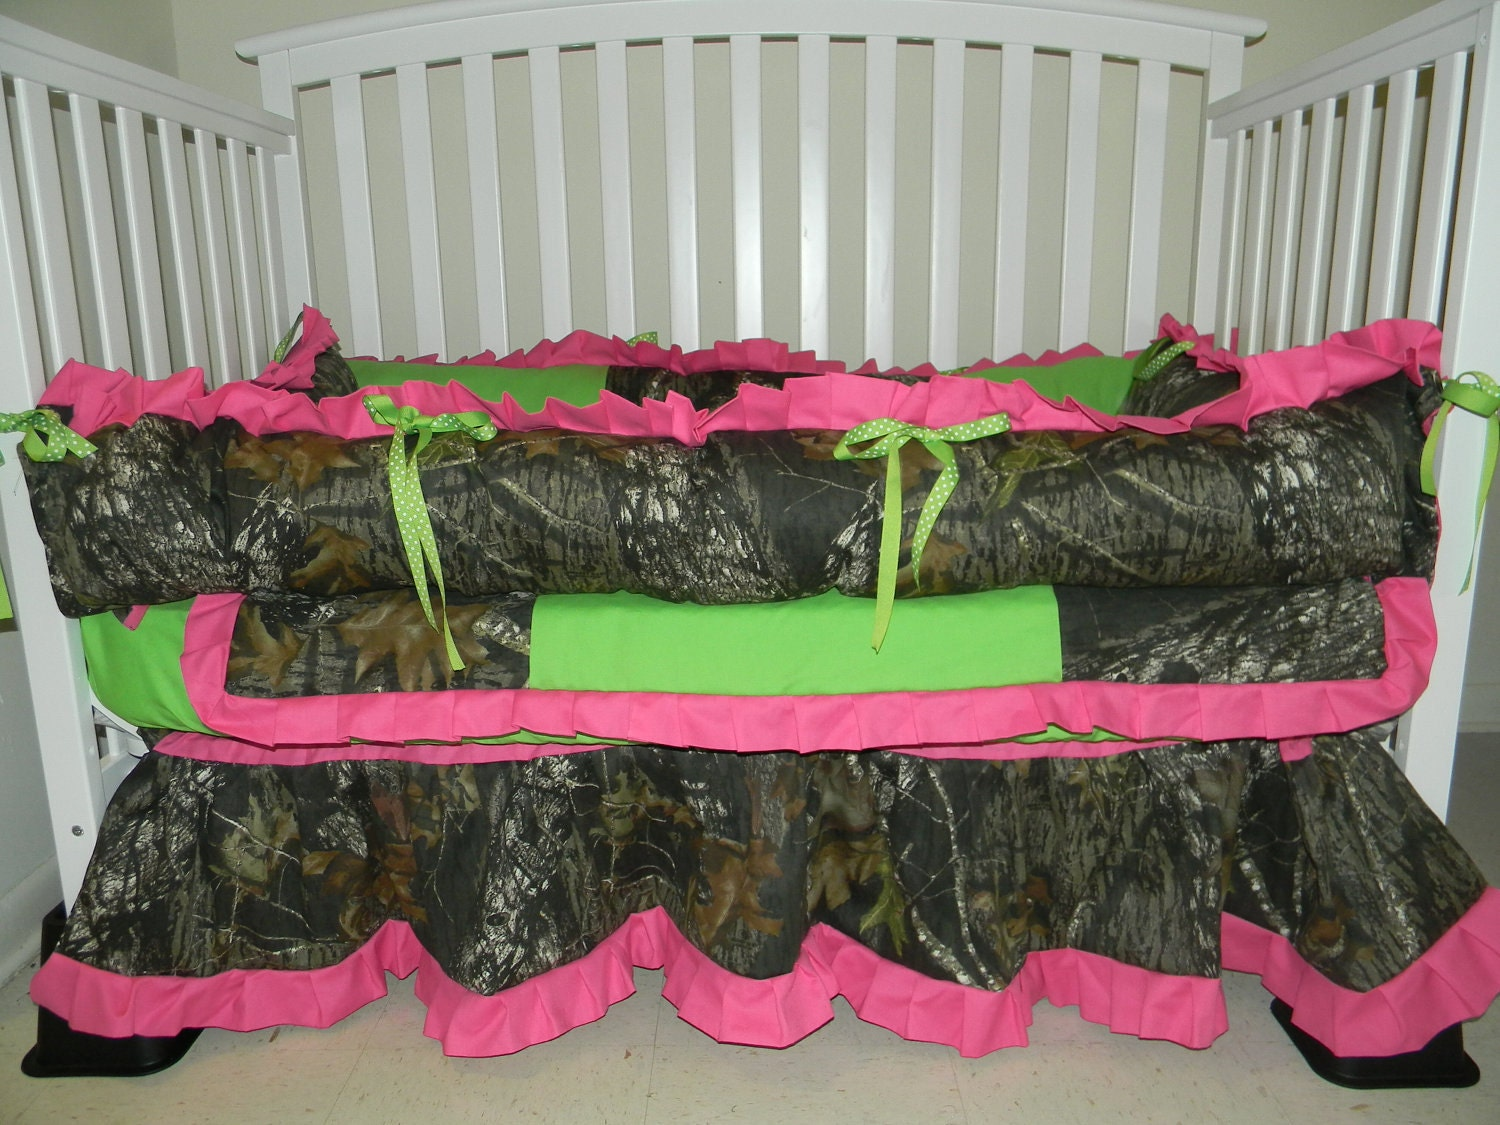 7pc Camo Mossy Oak Fabric Pink Crib Bedding Nursery Set: Camo Mossy Oak And Lime Green Minky Dot With Hot Pink Baby